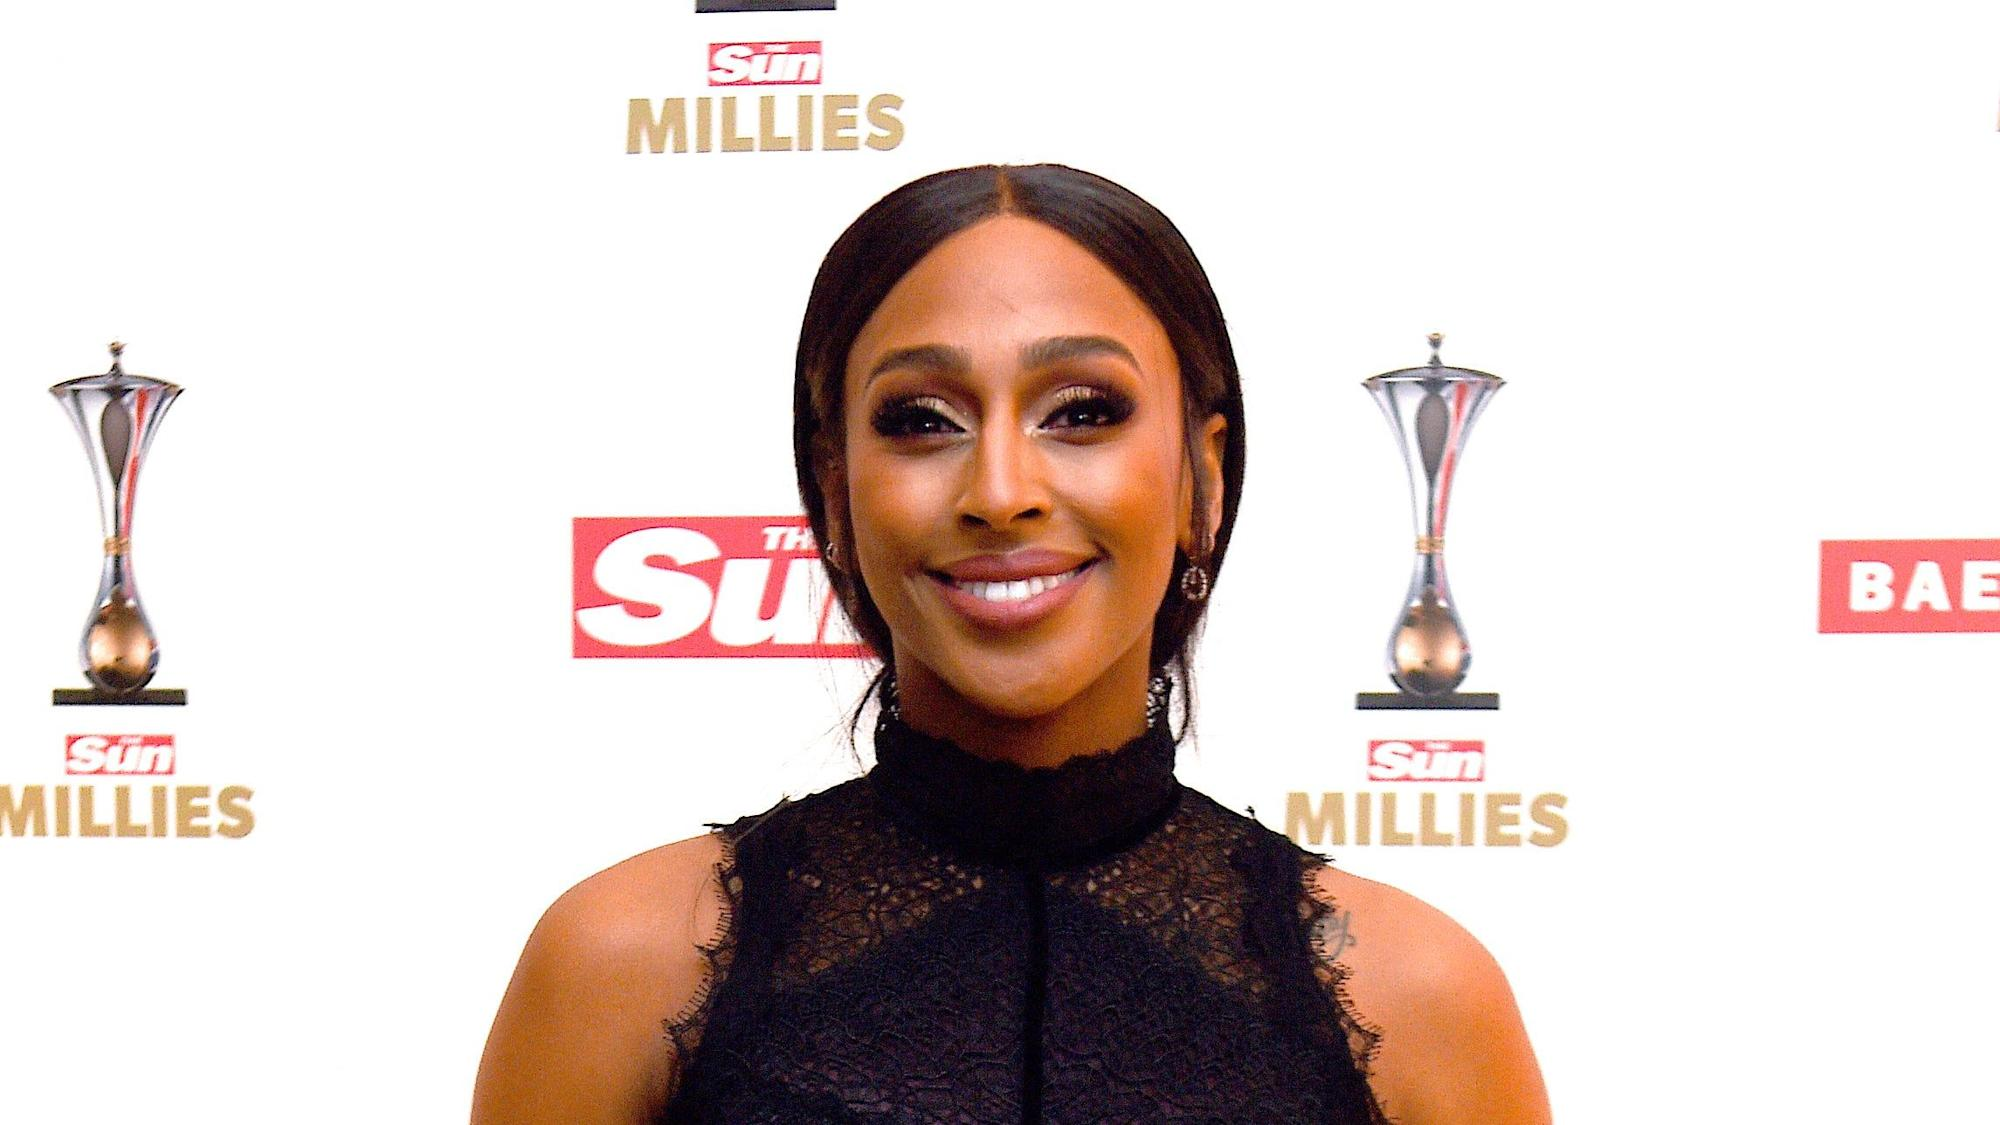 Harry and Meghan 'brave' to speak out, Alexandra Burke says